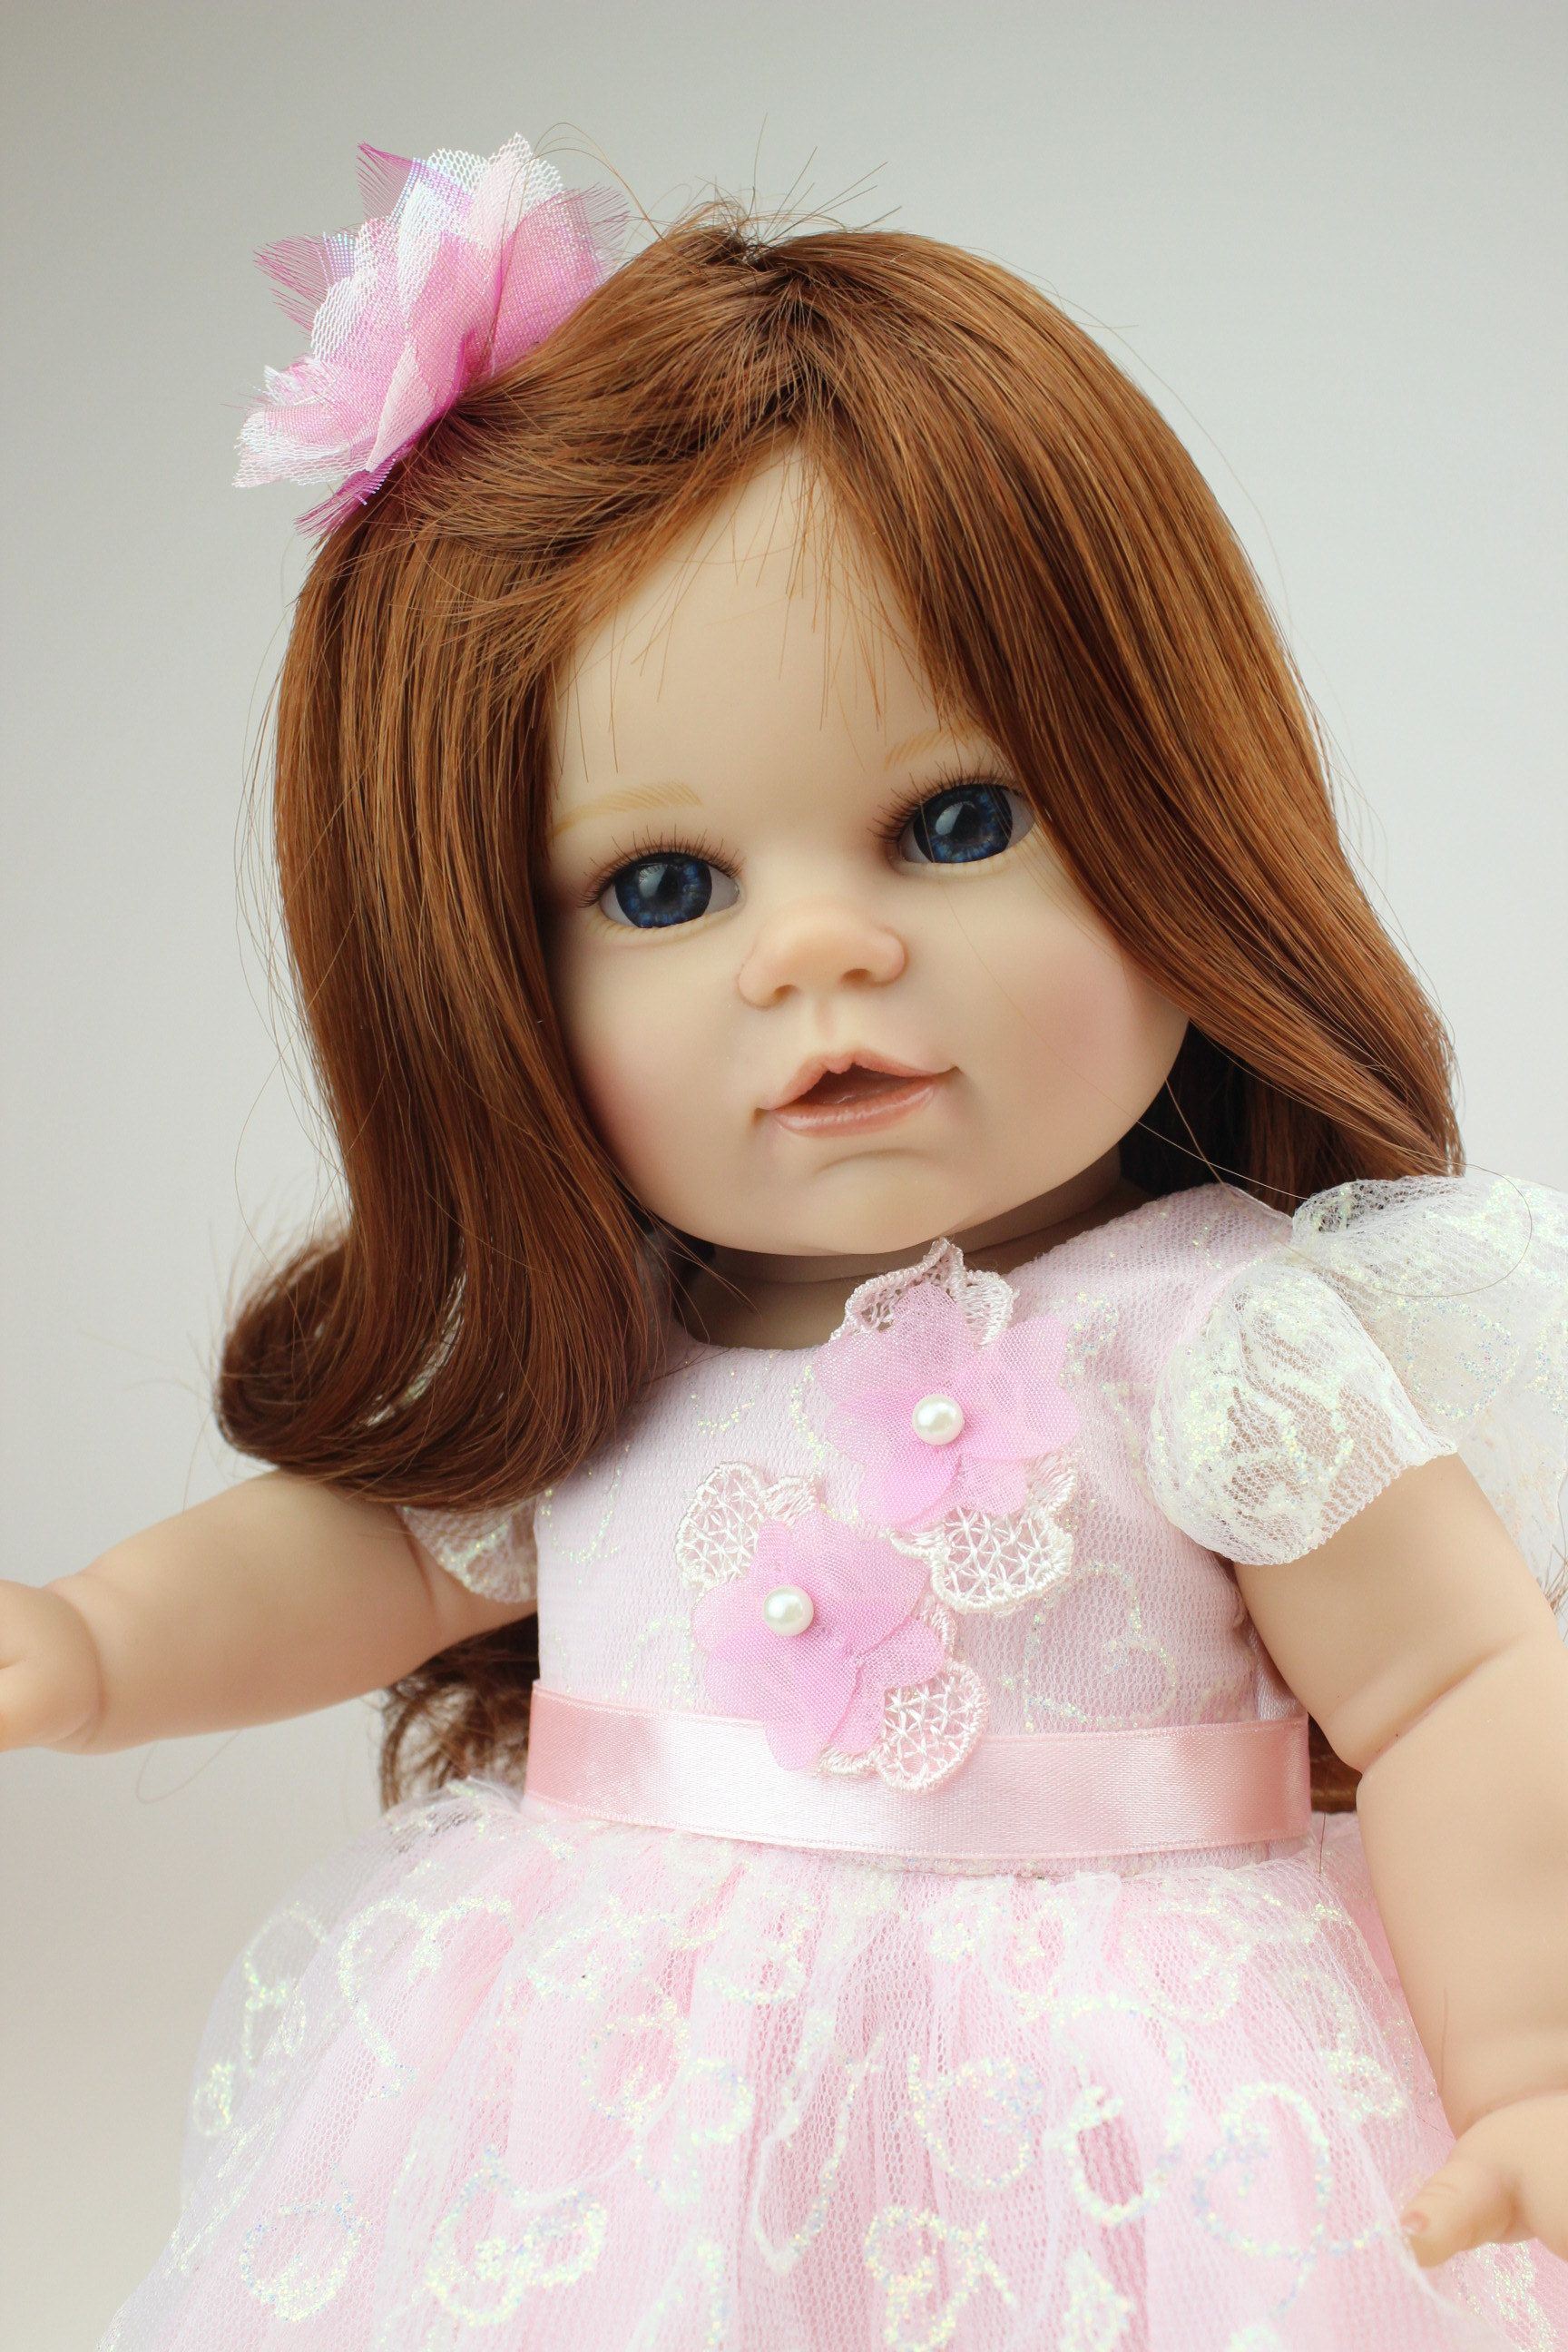 Full Silicone 45cm American Girl Doll Brown Hair Including All Fashion Girl Dolls High-grade Girl's Toy Gift